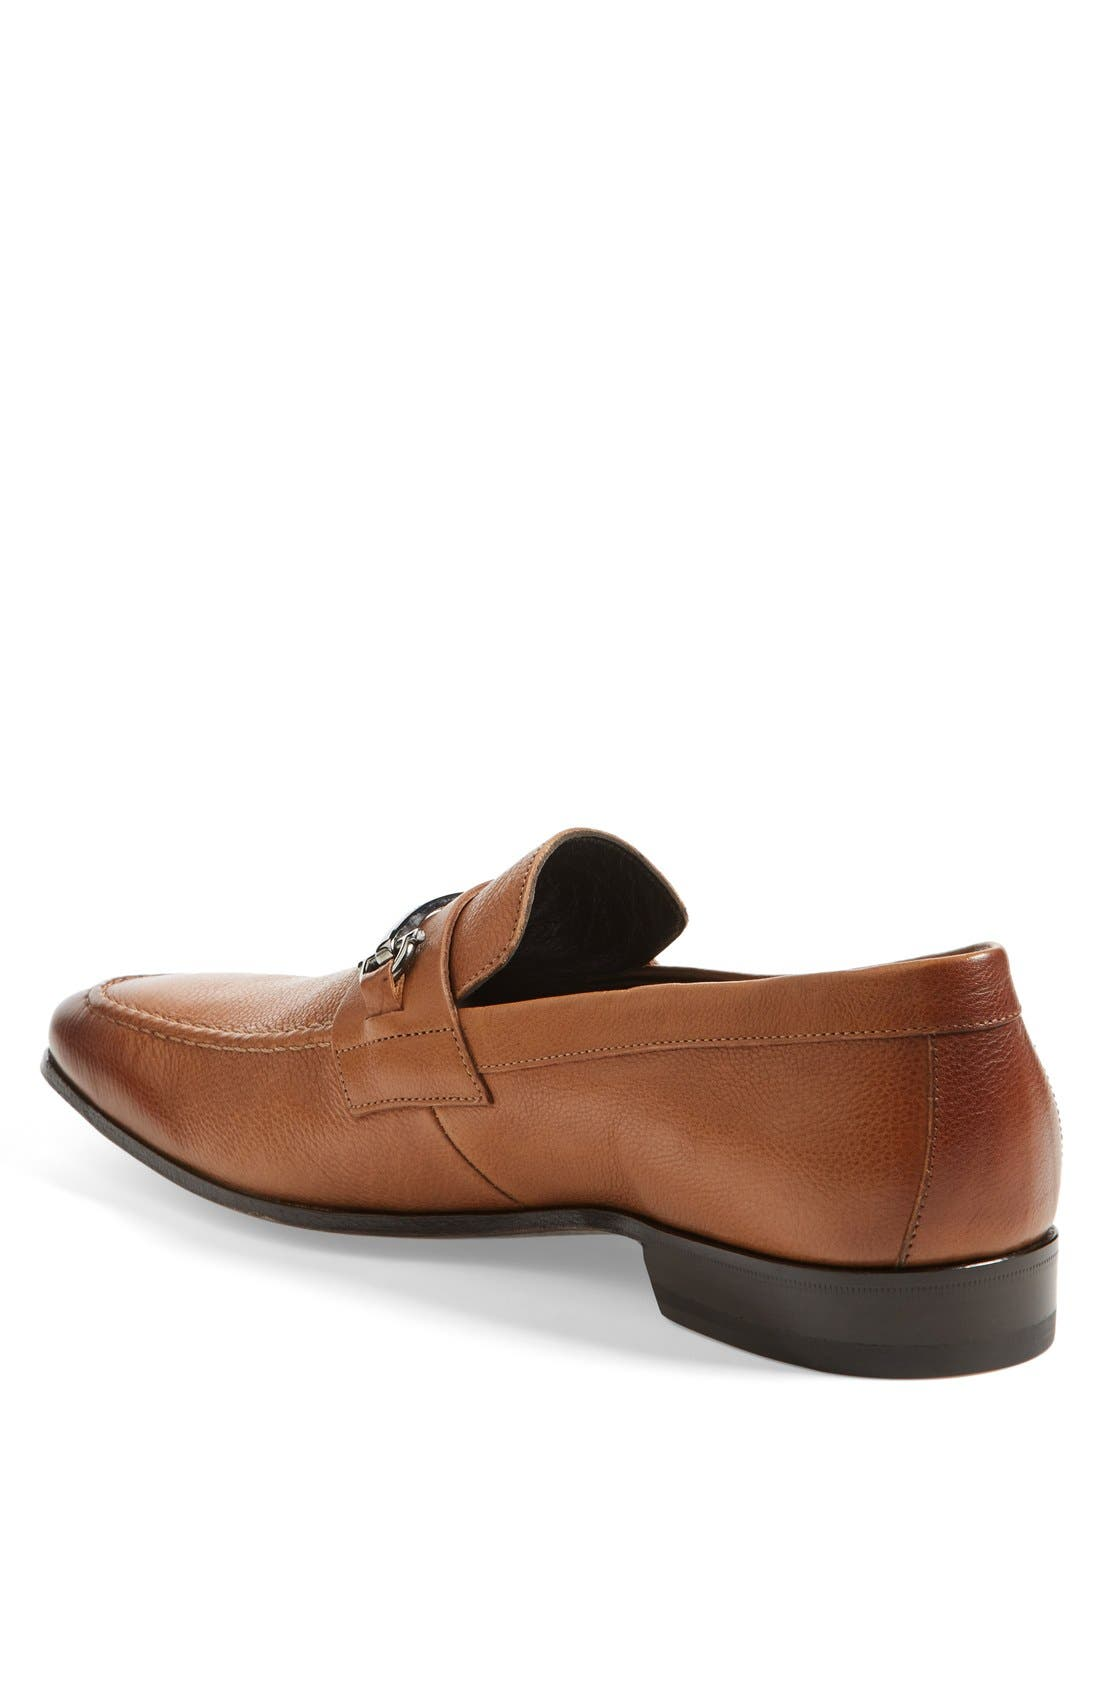 'Mamante II' Pebbled Leather Loafer,                             Alternate thumbnail 2, color,                             Light Brown